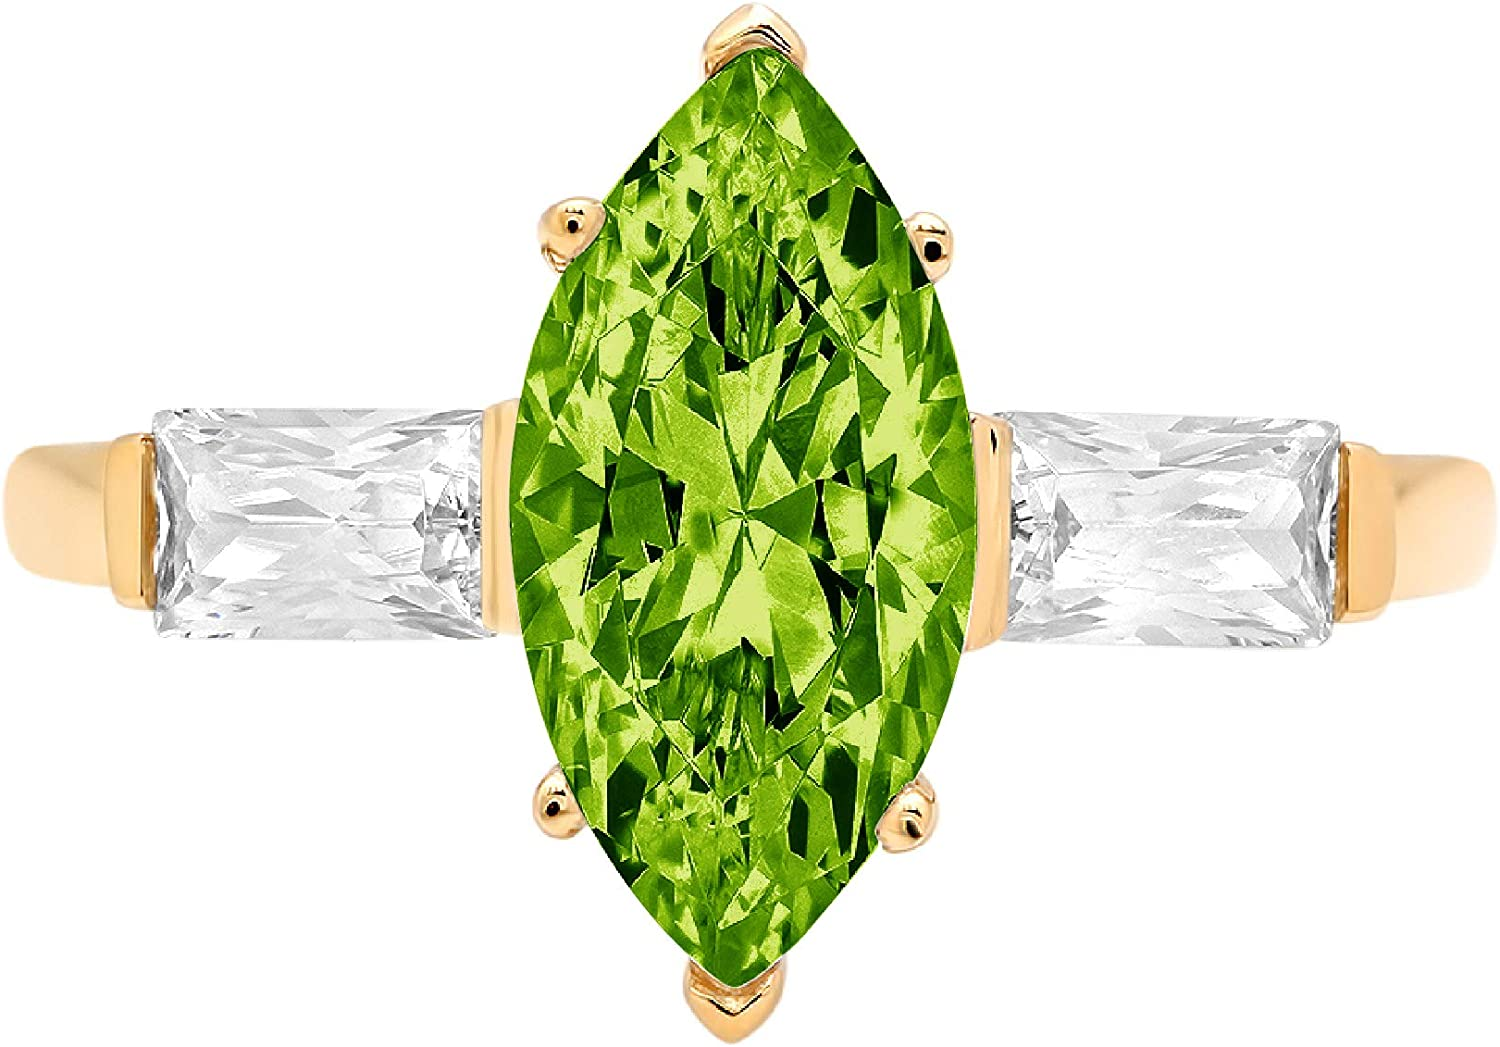 2 ct Marquise Baguette cut 3 stone Solitaire with Accent Designer Genuine Natural Green Peridot Gemstone Ideal VVS1 Engagement Promise Statement Anniversary Bridal Wedding Ring 14k Yellow Gold